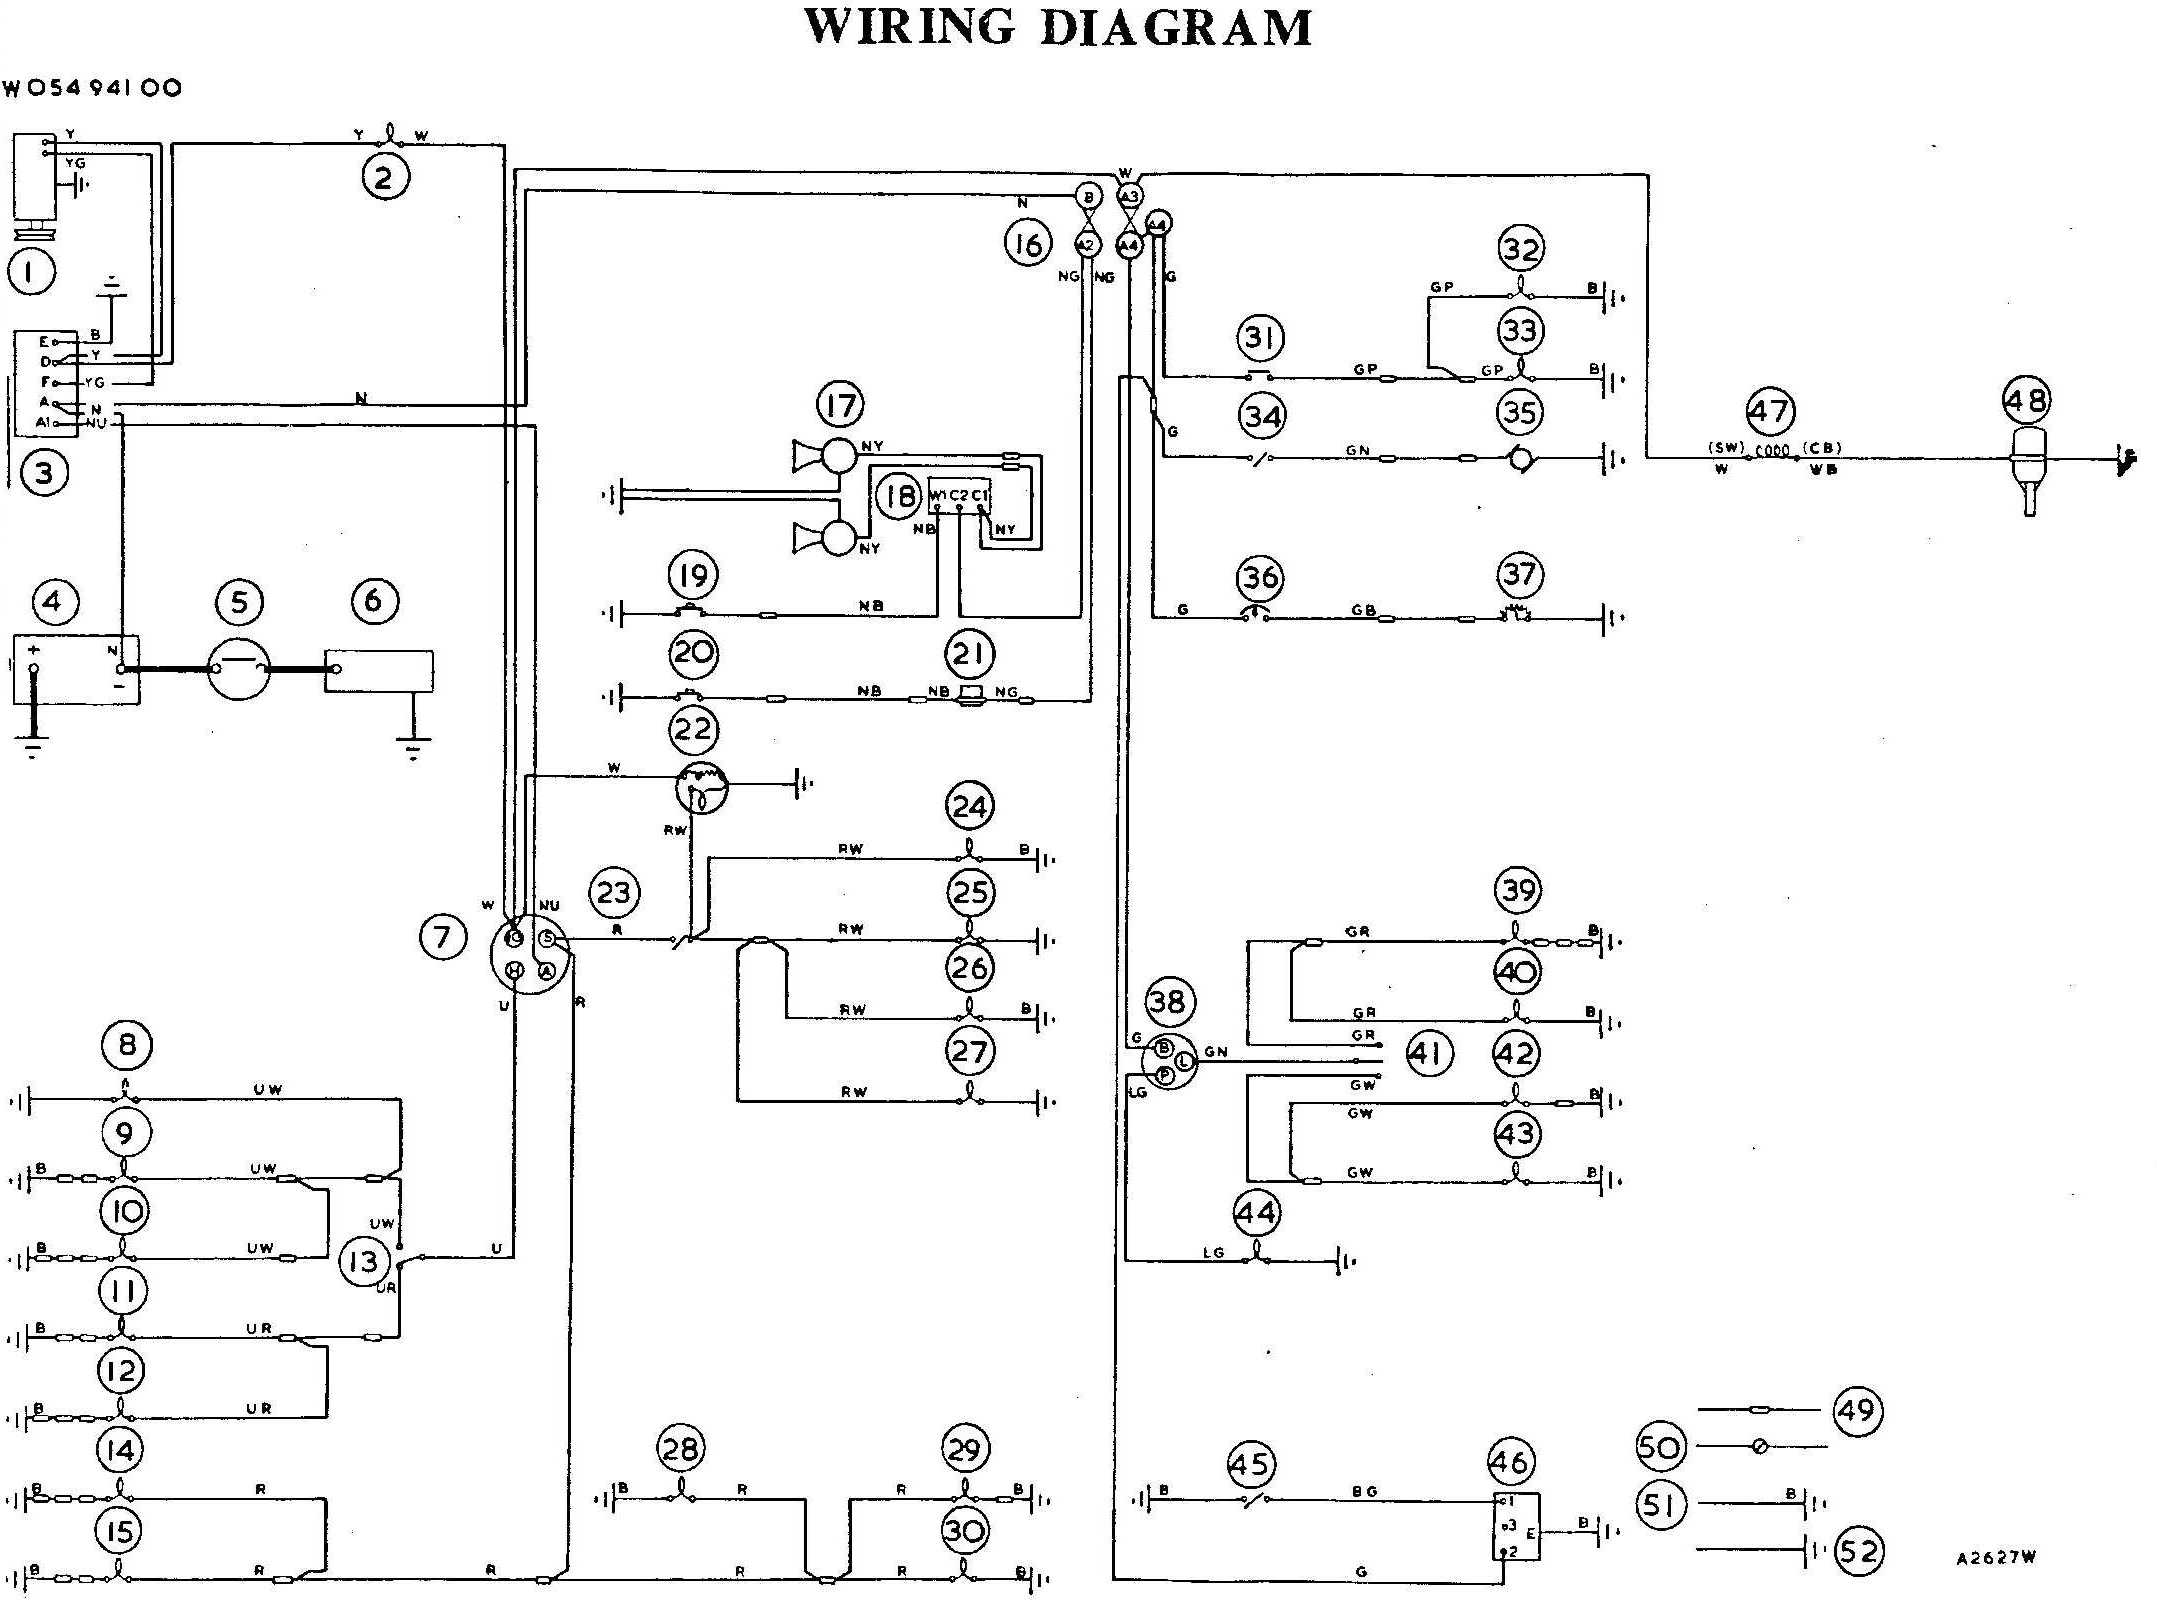 Wiring Diagram 1959 Mg Midget And Schematics 1971 1963 Auto Electrical Source Bugeye Diagrams Rh Gerardsgarage Com Austin Healey Sprite